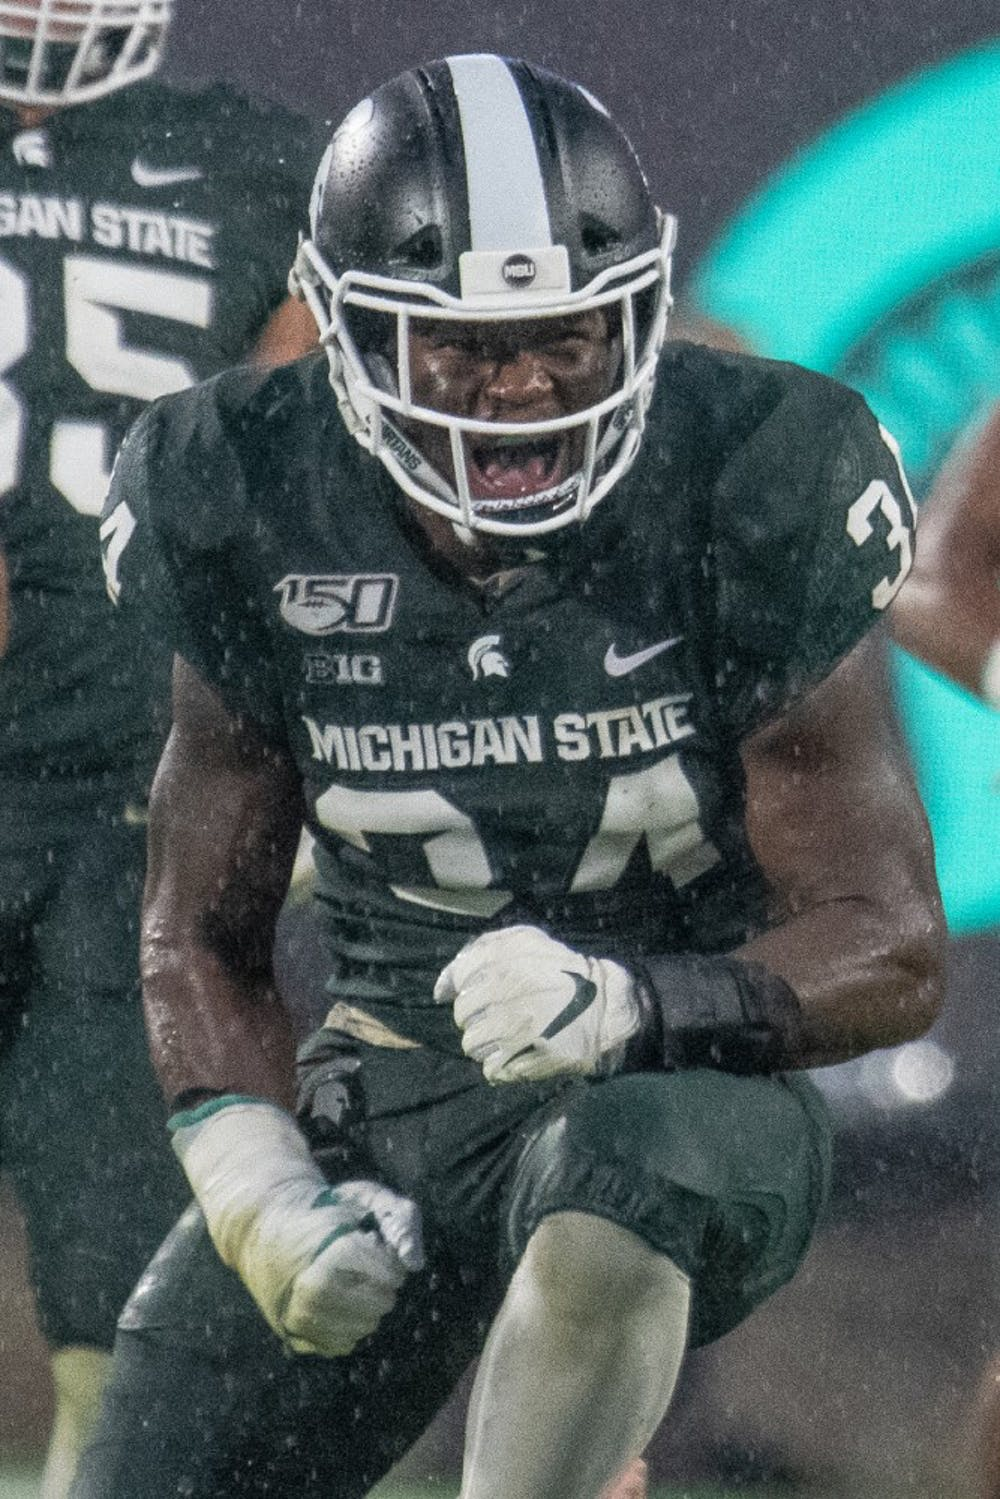 Michigan State Bowl Game Possibilities Is A Cold Postseason